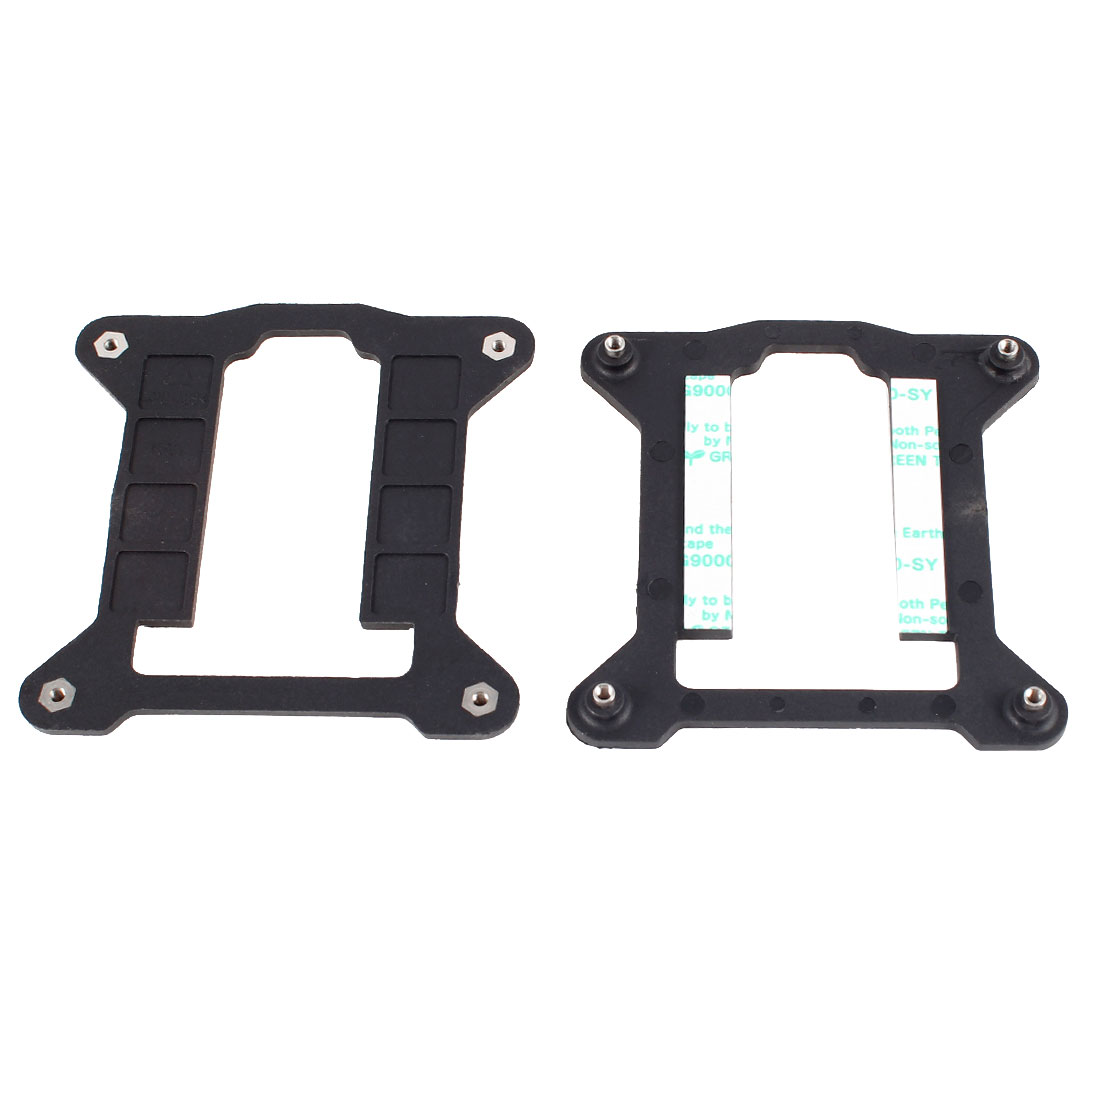 2 Pcs Computer CPU Heatsink Fan Bracket Backplate for Socket 1155 1156 Motherboard